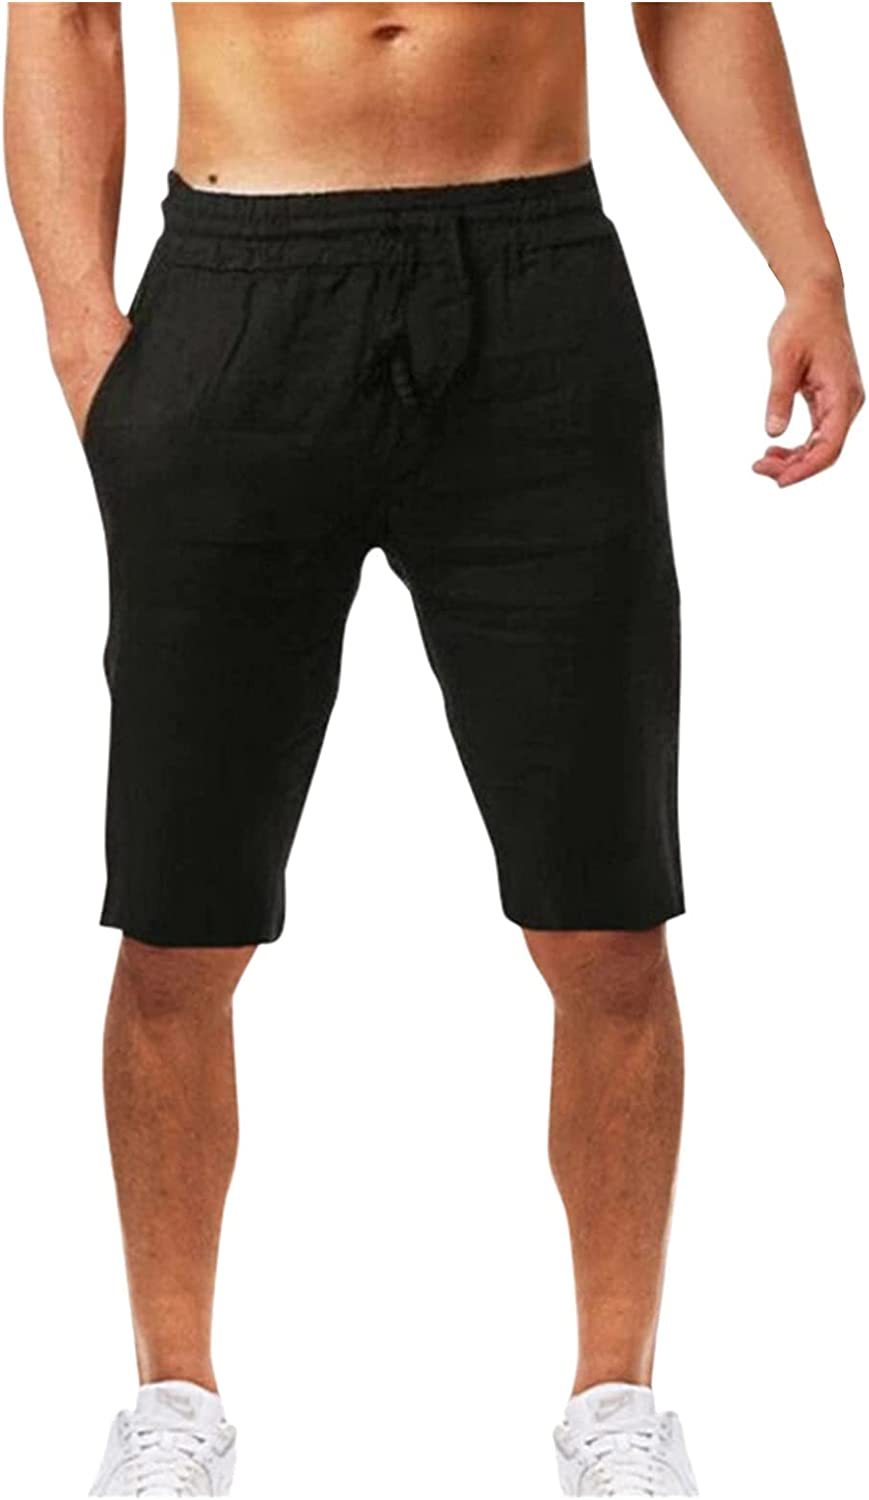 2021 Men's Summer Casual and Fashionable Solid Cotton and Linen Shorts